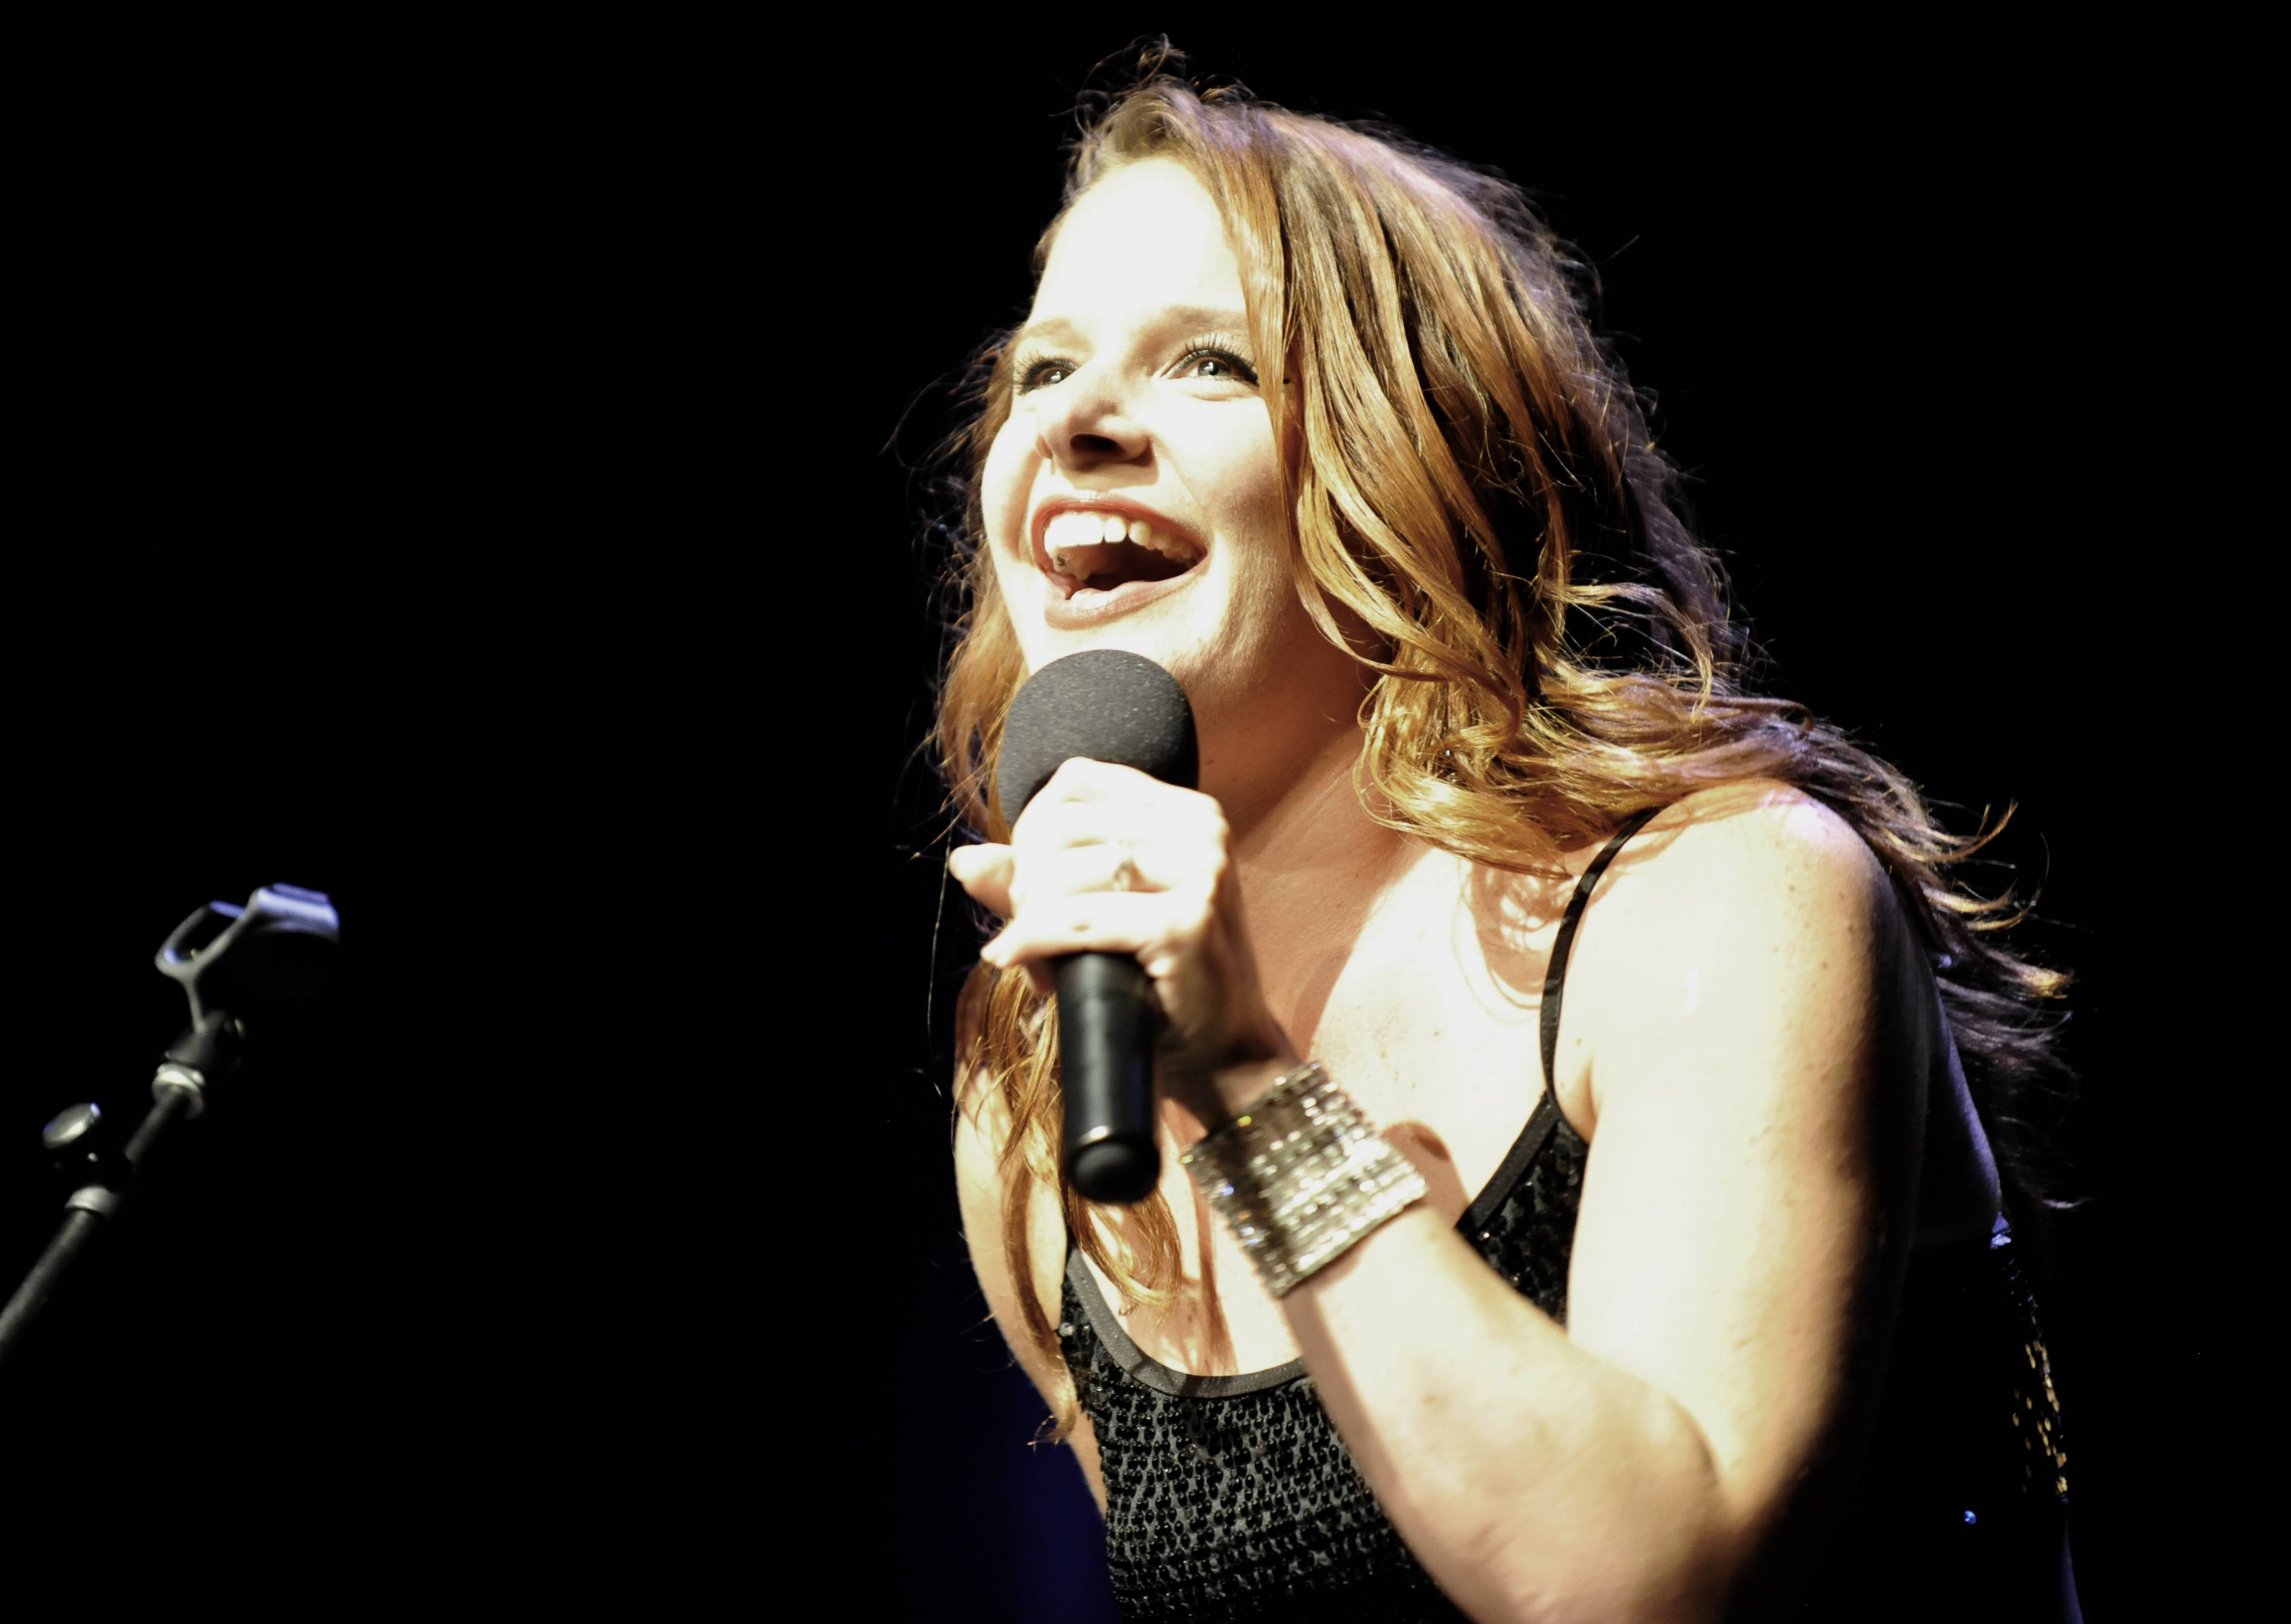 See Rachel McPheeters of DeKalb and nine other top 10 finalists of Suburban Chicago's Got Talent perform at the Taste of Arlington Heights at 3:30 p.m. Saturday, Aug. 9. The grand prize winner and the online Fan Favorite will be announced at the event.